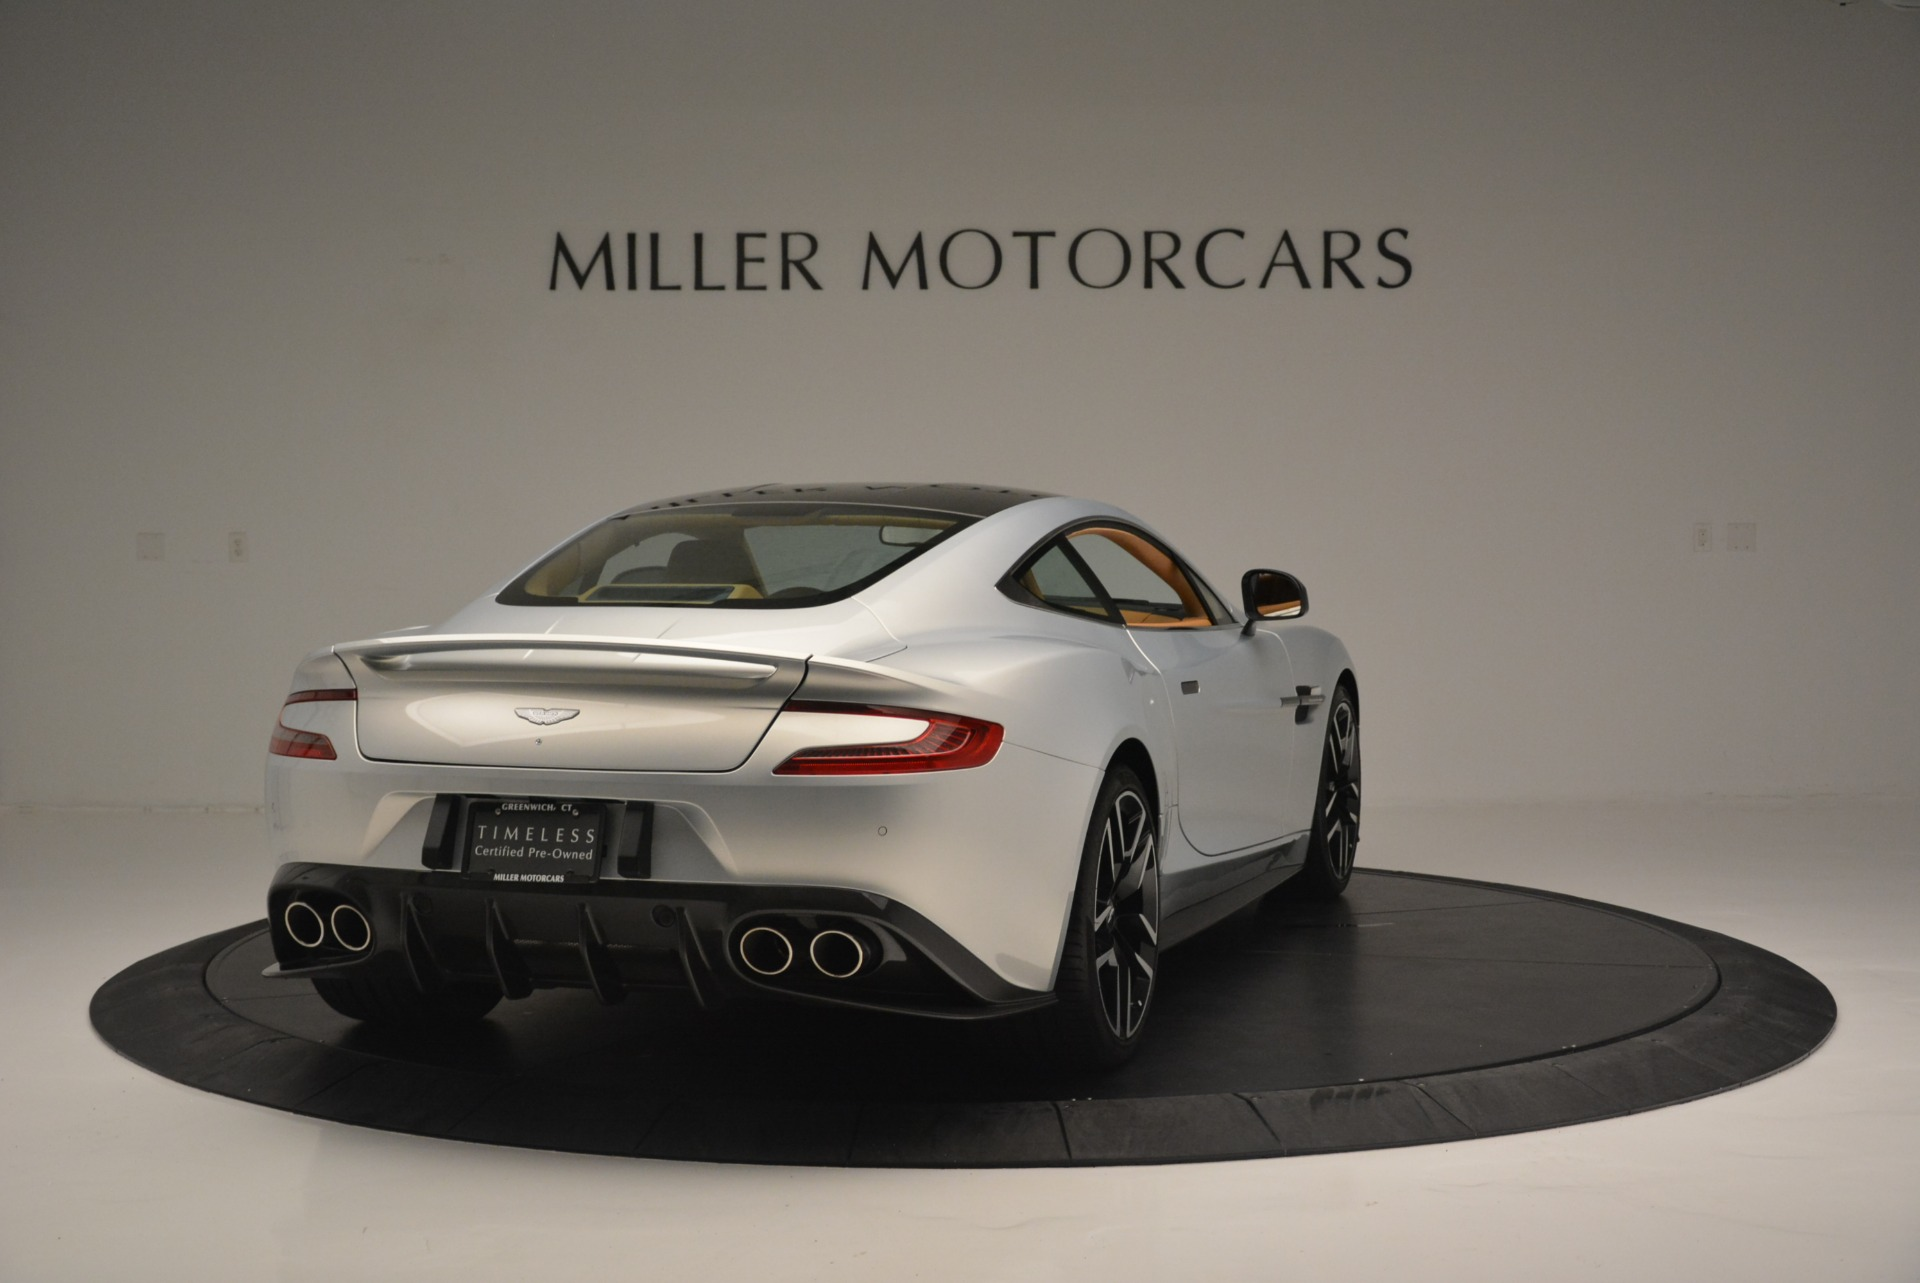 Used 2018 Aston Martin Vanquish S Coupe For Sale In Westport, CT 2421_p7